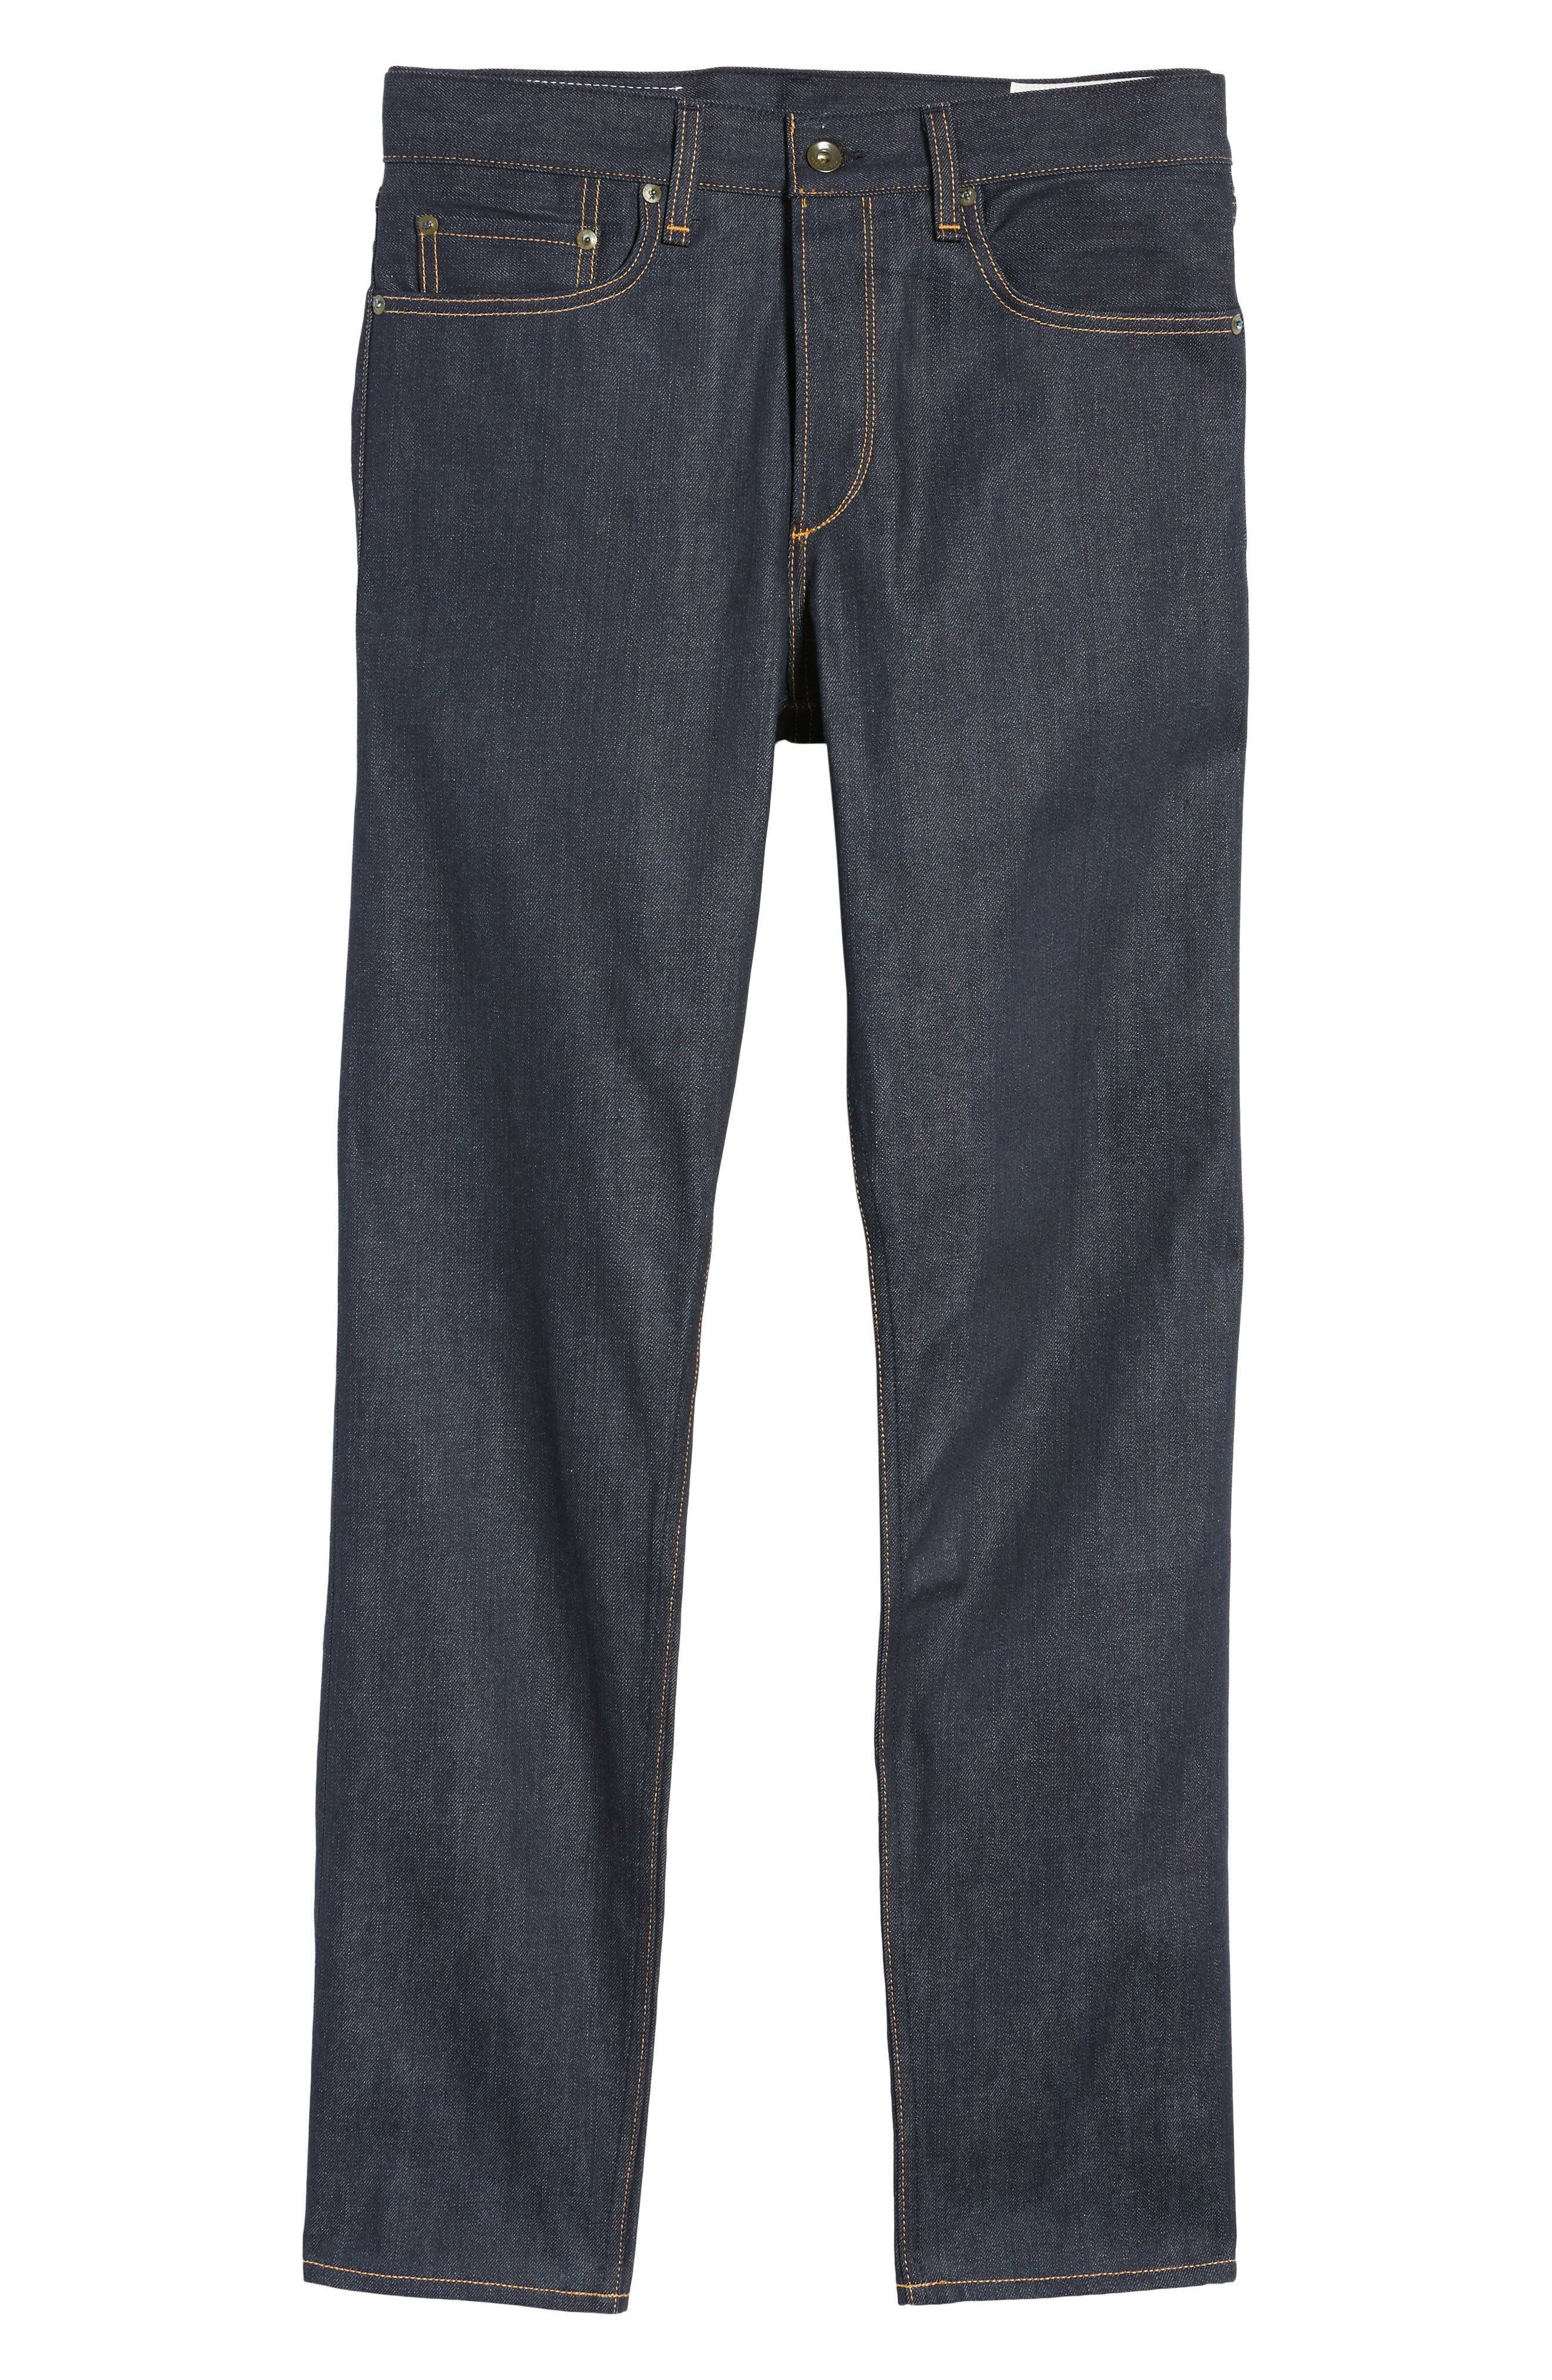 Standard Issue Fit 2 Slim Fit Raw Selvedge Jeans,                             Main thumbnail 1, color,                             INDIGO